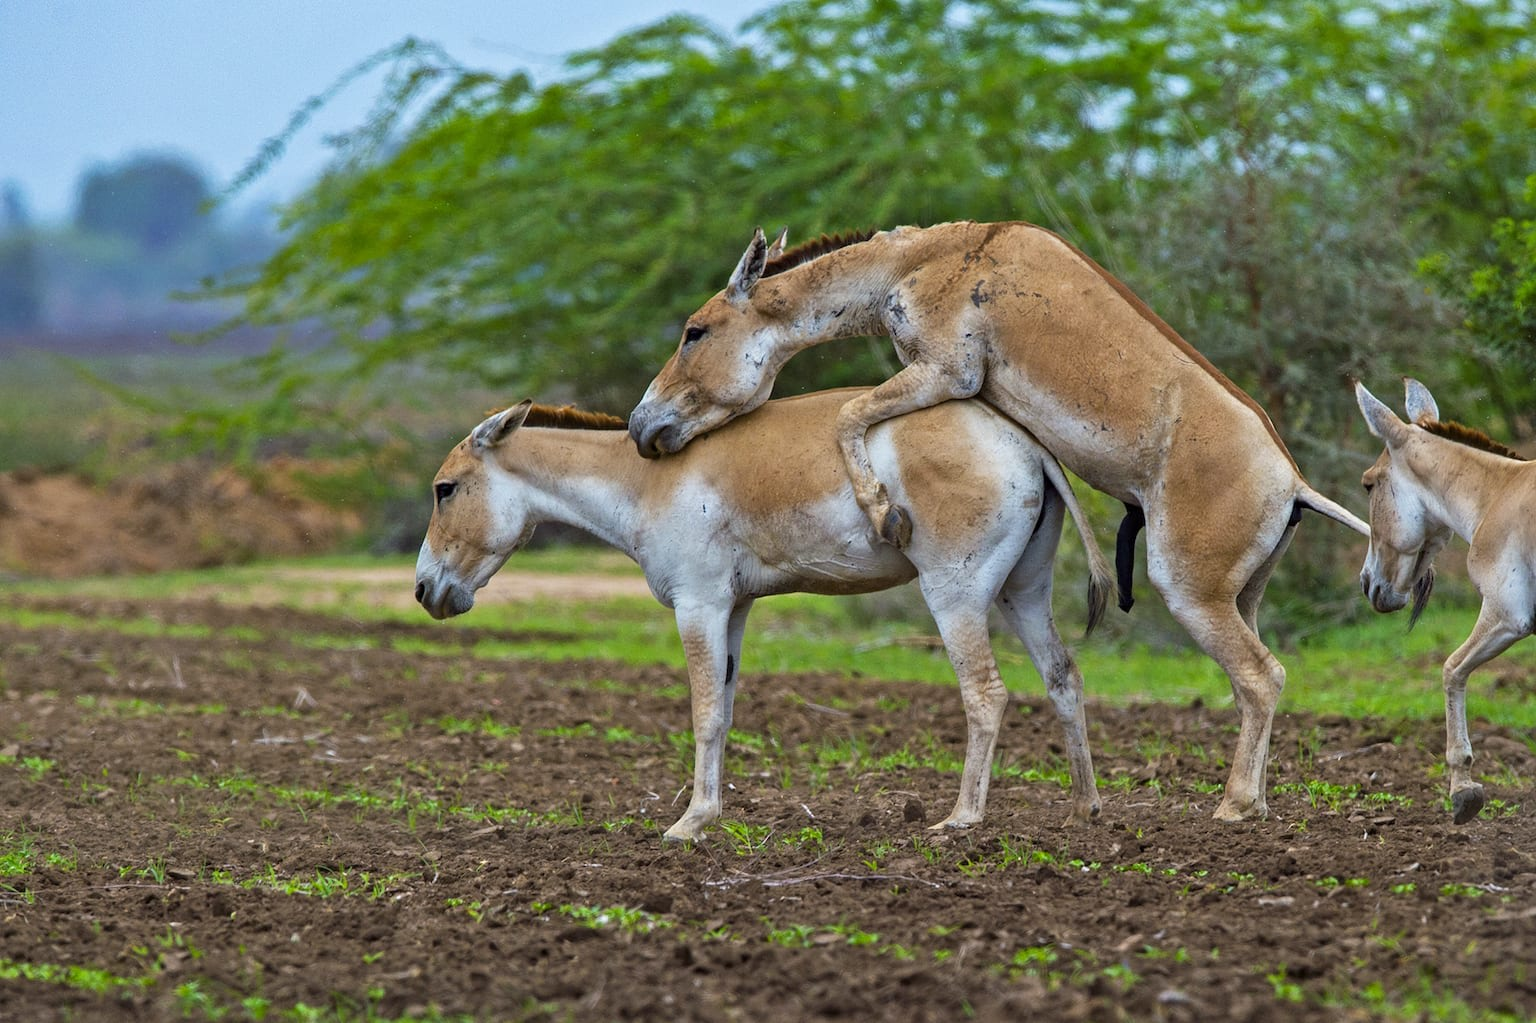 "Breeding season is a time of dominance display. ""Territorial stallions soiled themselves with mud/slush during the breeding period, which could be a visual display,"" writes Shah, adding that, ""The stallion probably uses olfactory and visual markings like defecation and micturition [urinating] on territory borders and other parts of its territory.  Fights between stallions are not uncommon at this time of year. Most of the time, Shah writes, the territory-holder is the winner, which results in the displaced stallion occupying part of its former range or wandering around for a new area to occupy."